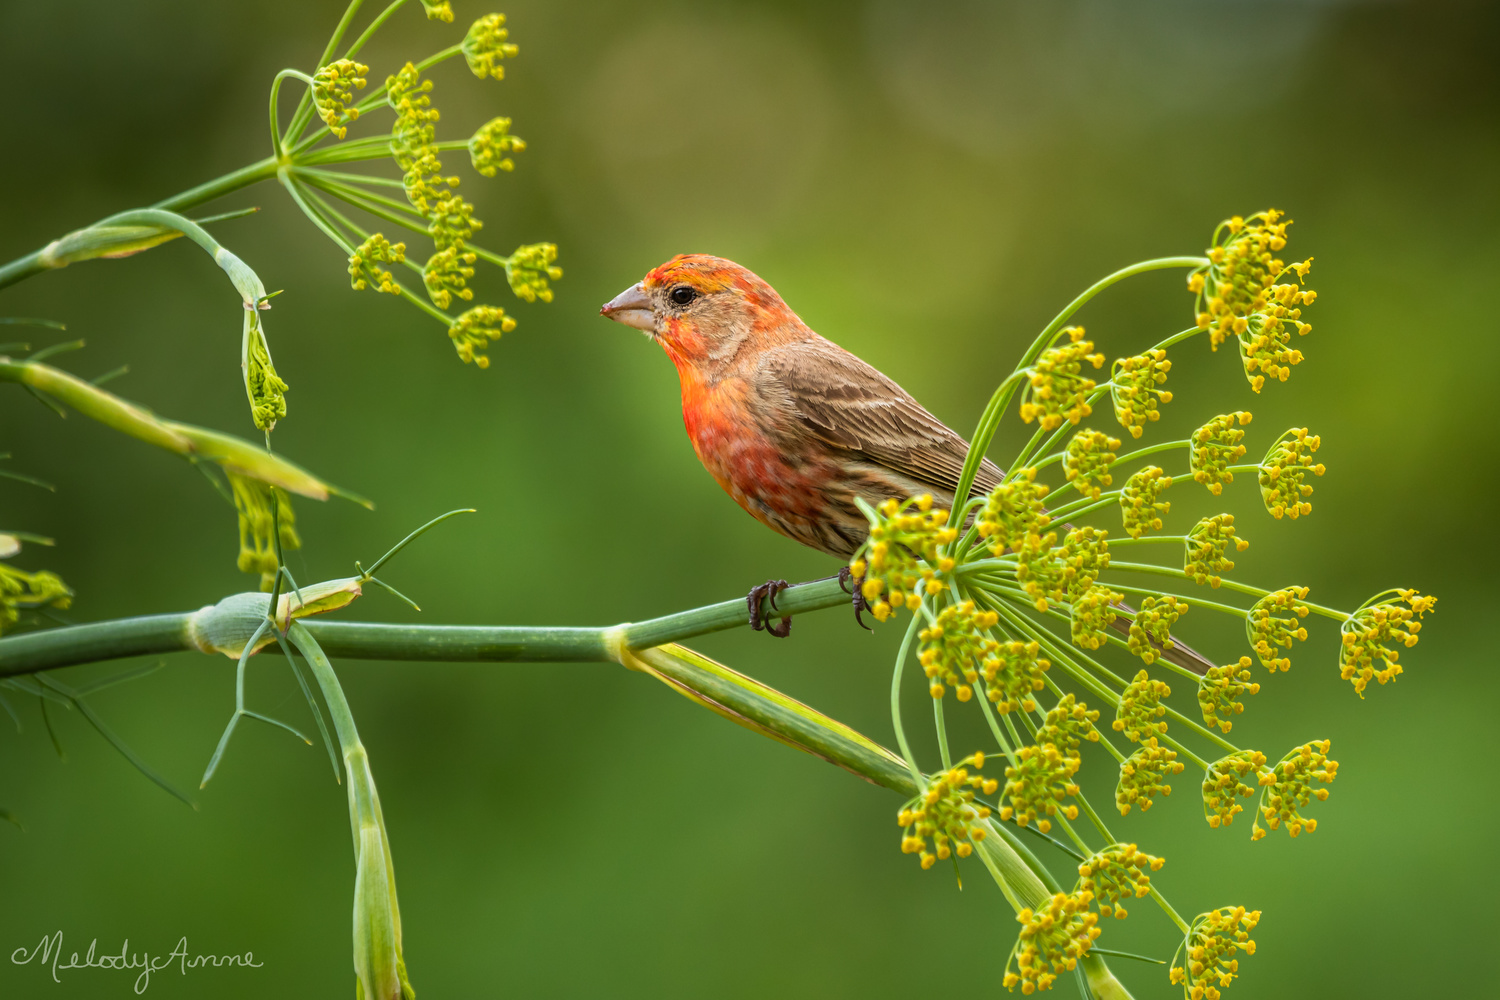 Finch in the Fennel by Melody Mellinger